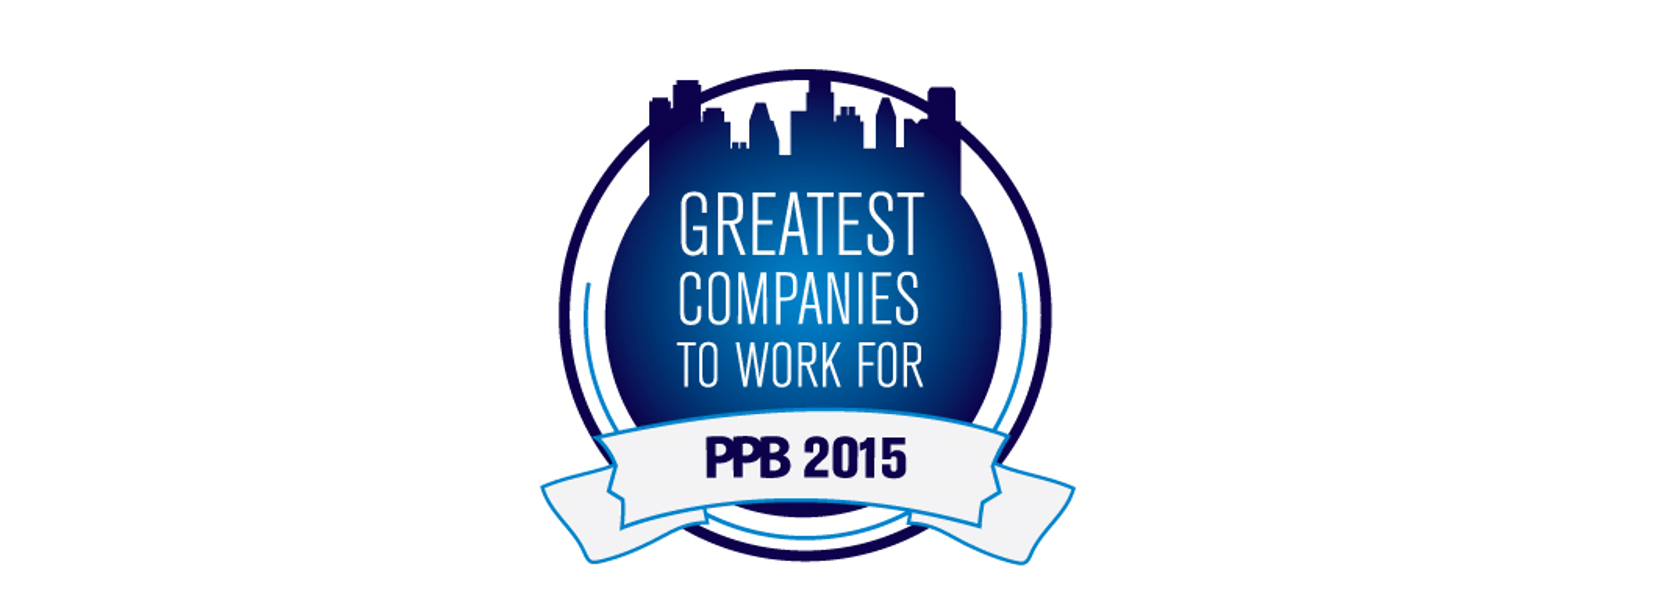 PPB 2015: Greatest Companies to Work For